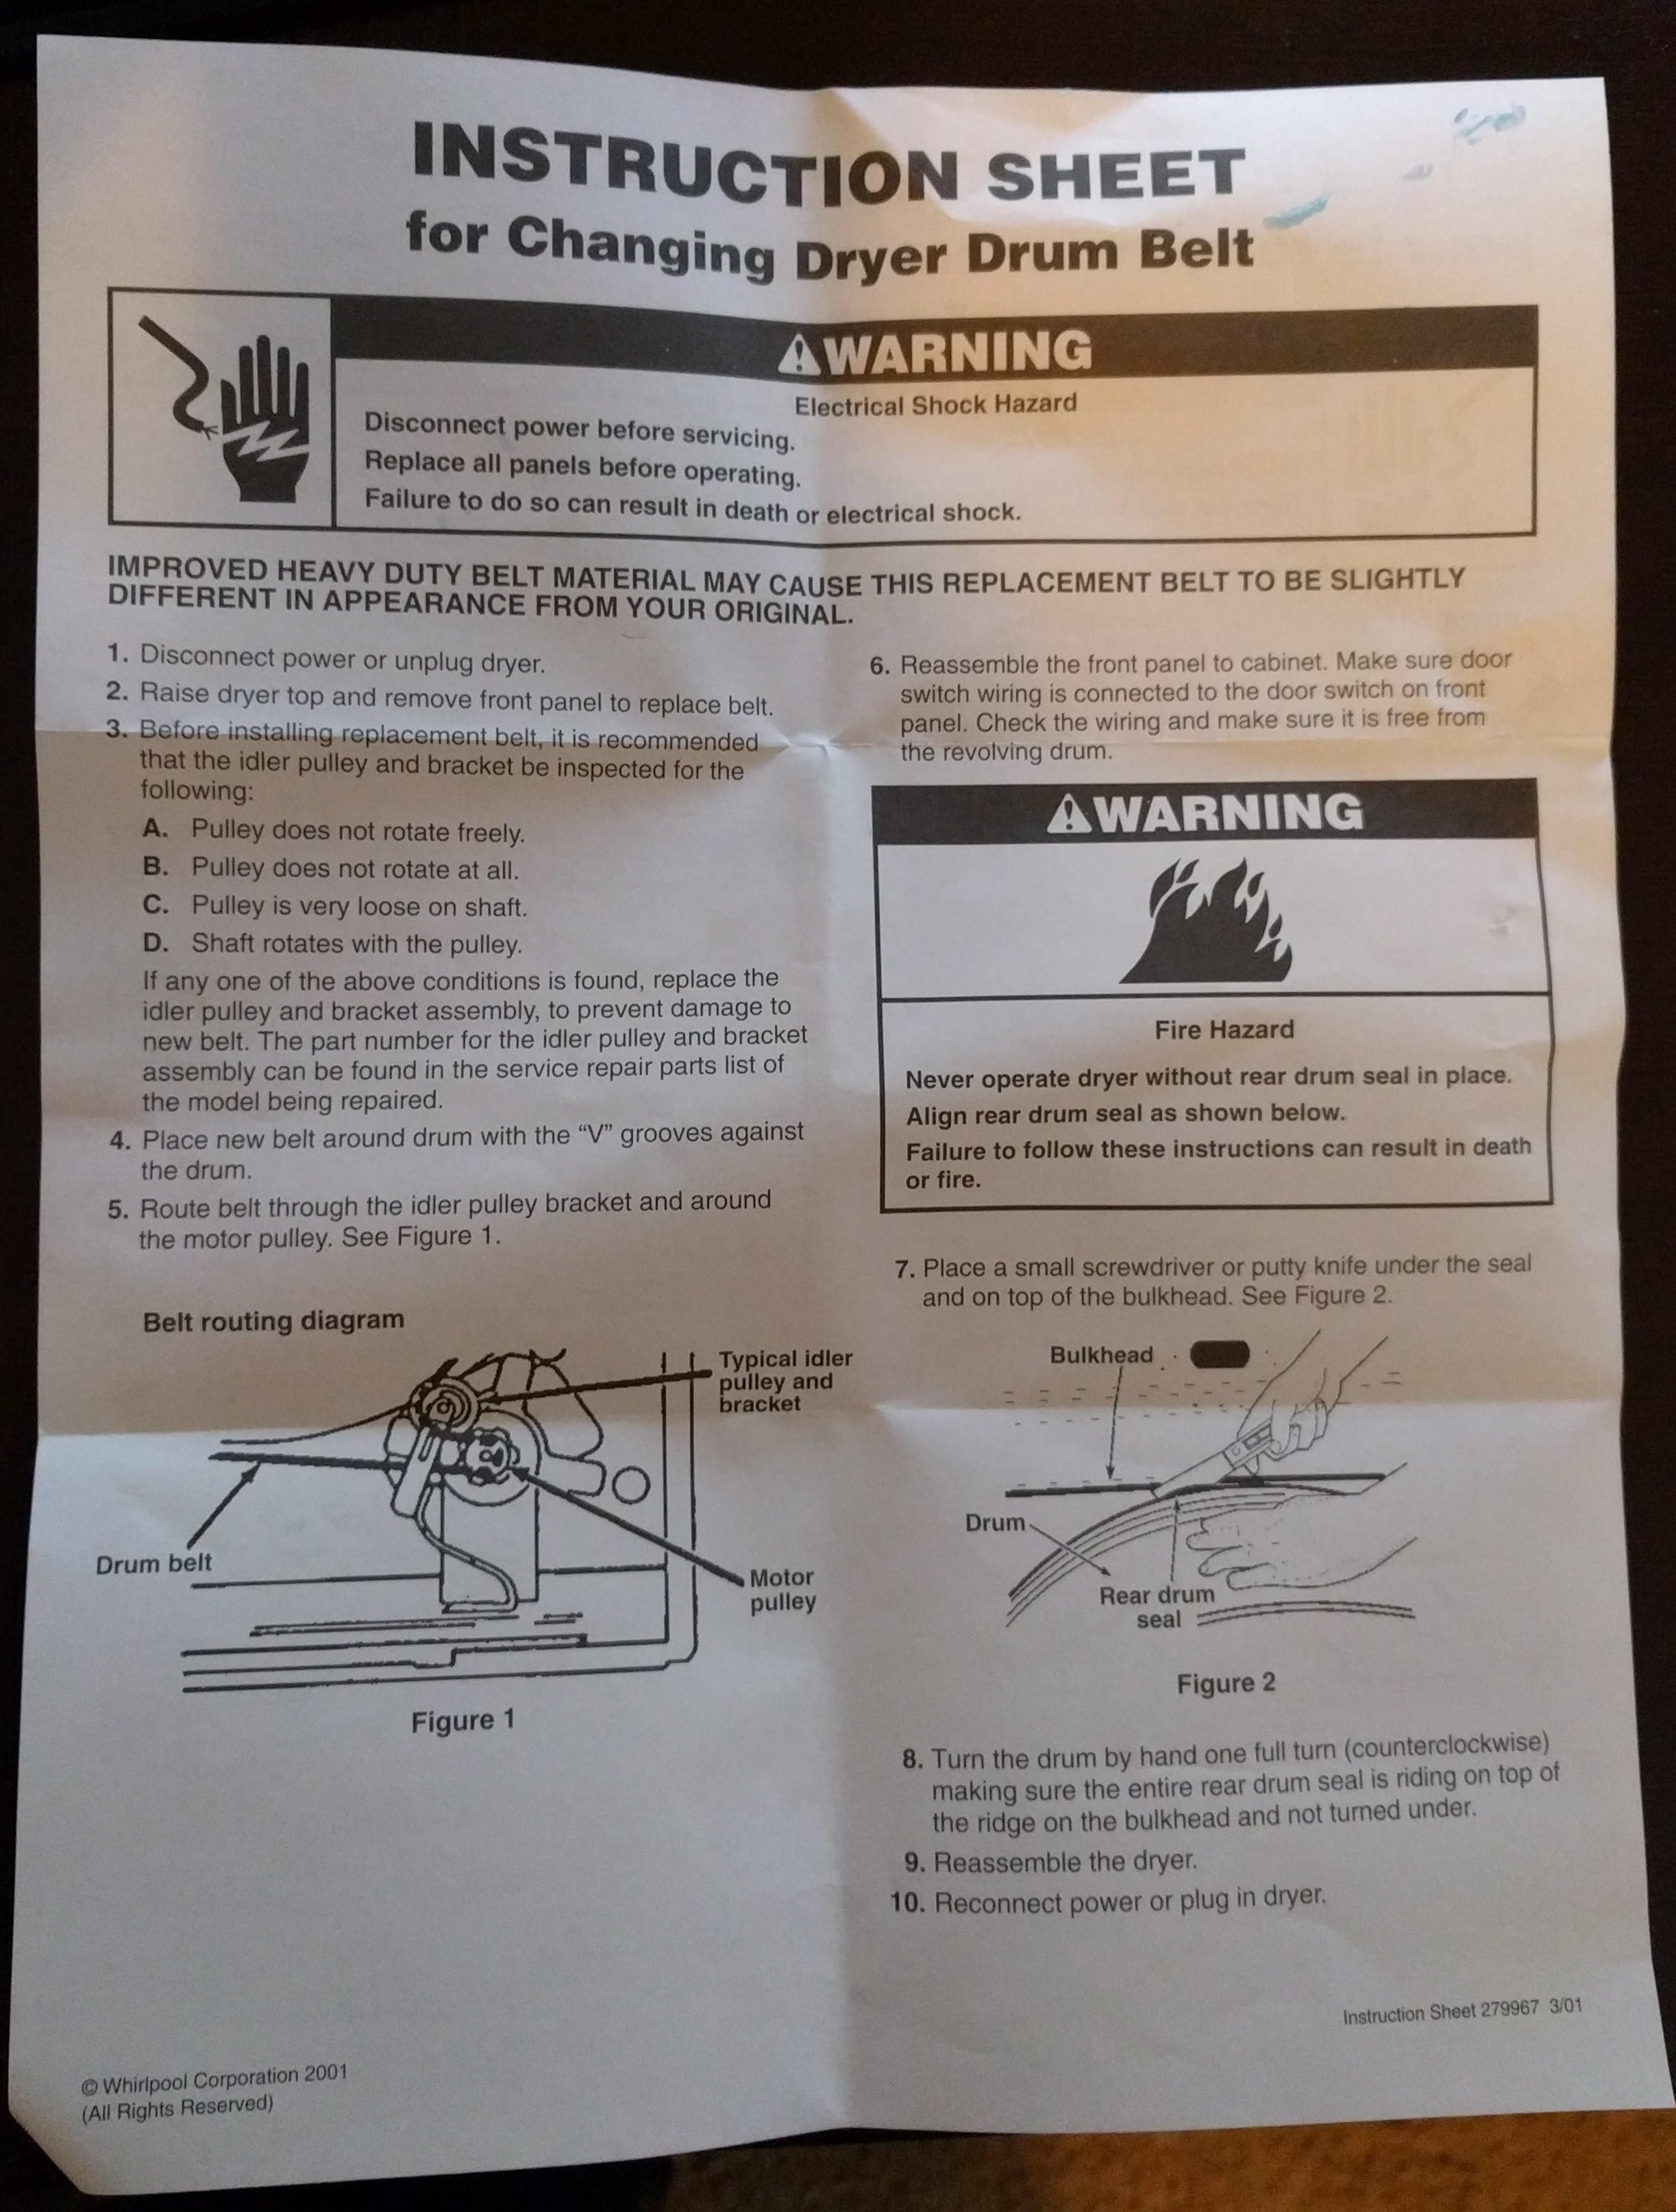 kenmore 80 series dryer belt. this confirmed my suspicion with the idler pulley being issue, so i\u0027m glad i replaced it all at once rather than ordering just belt. dryer now kenmore 80 series belt